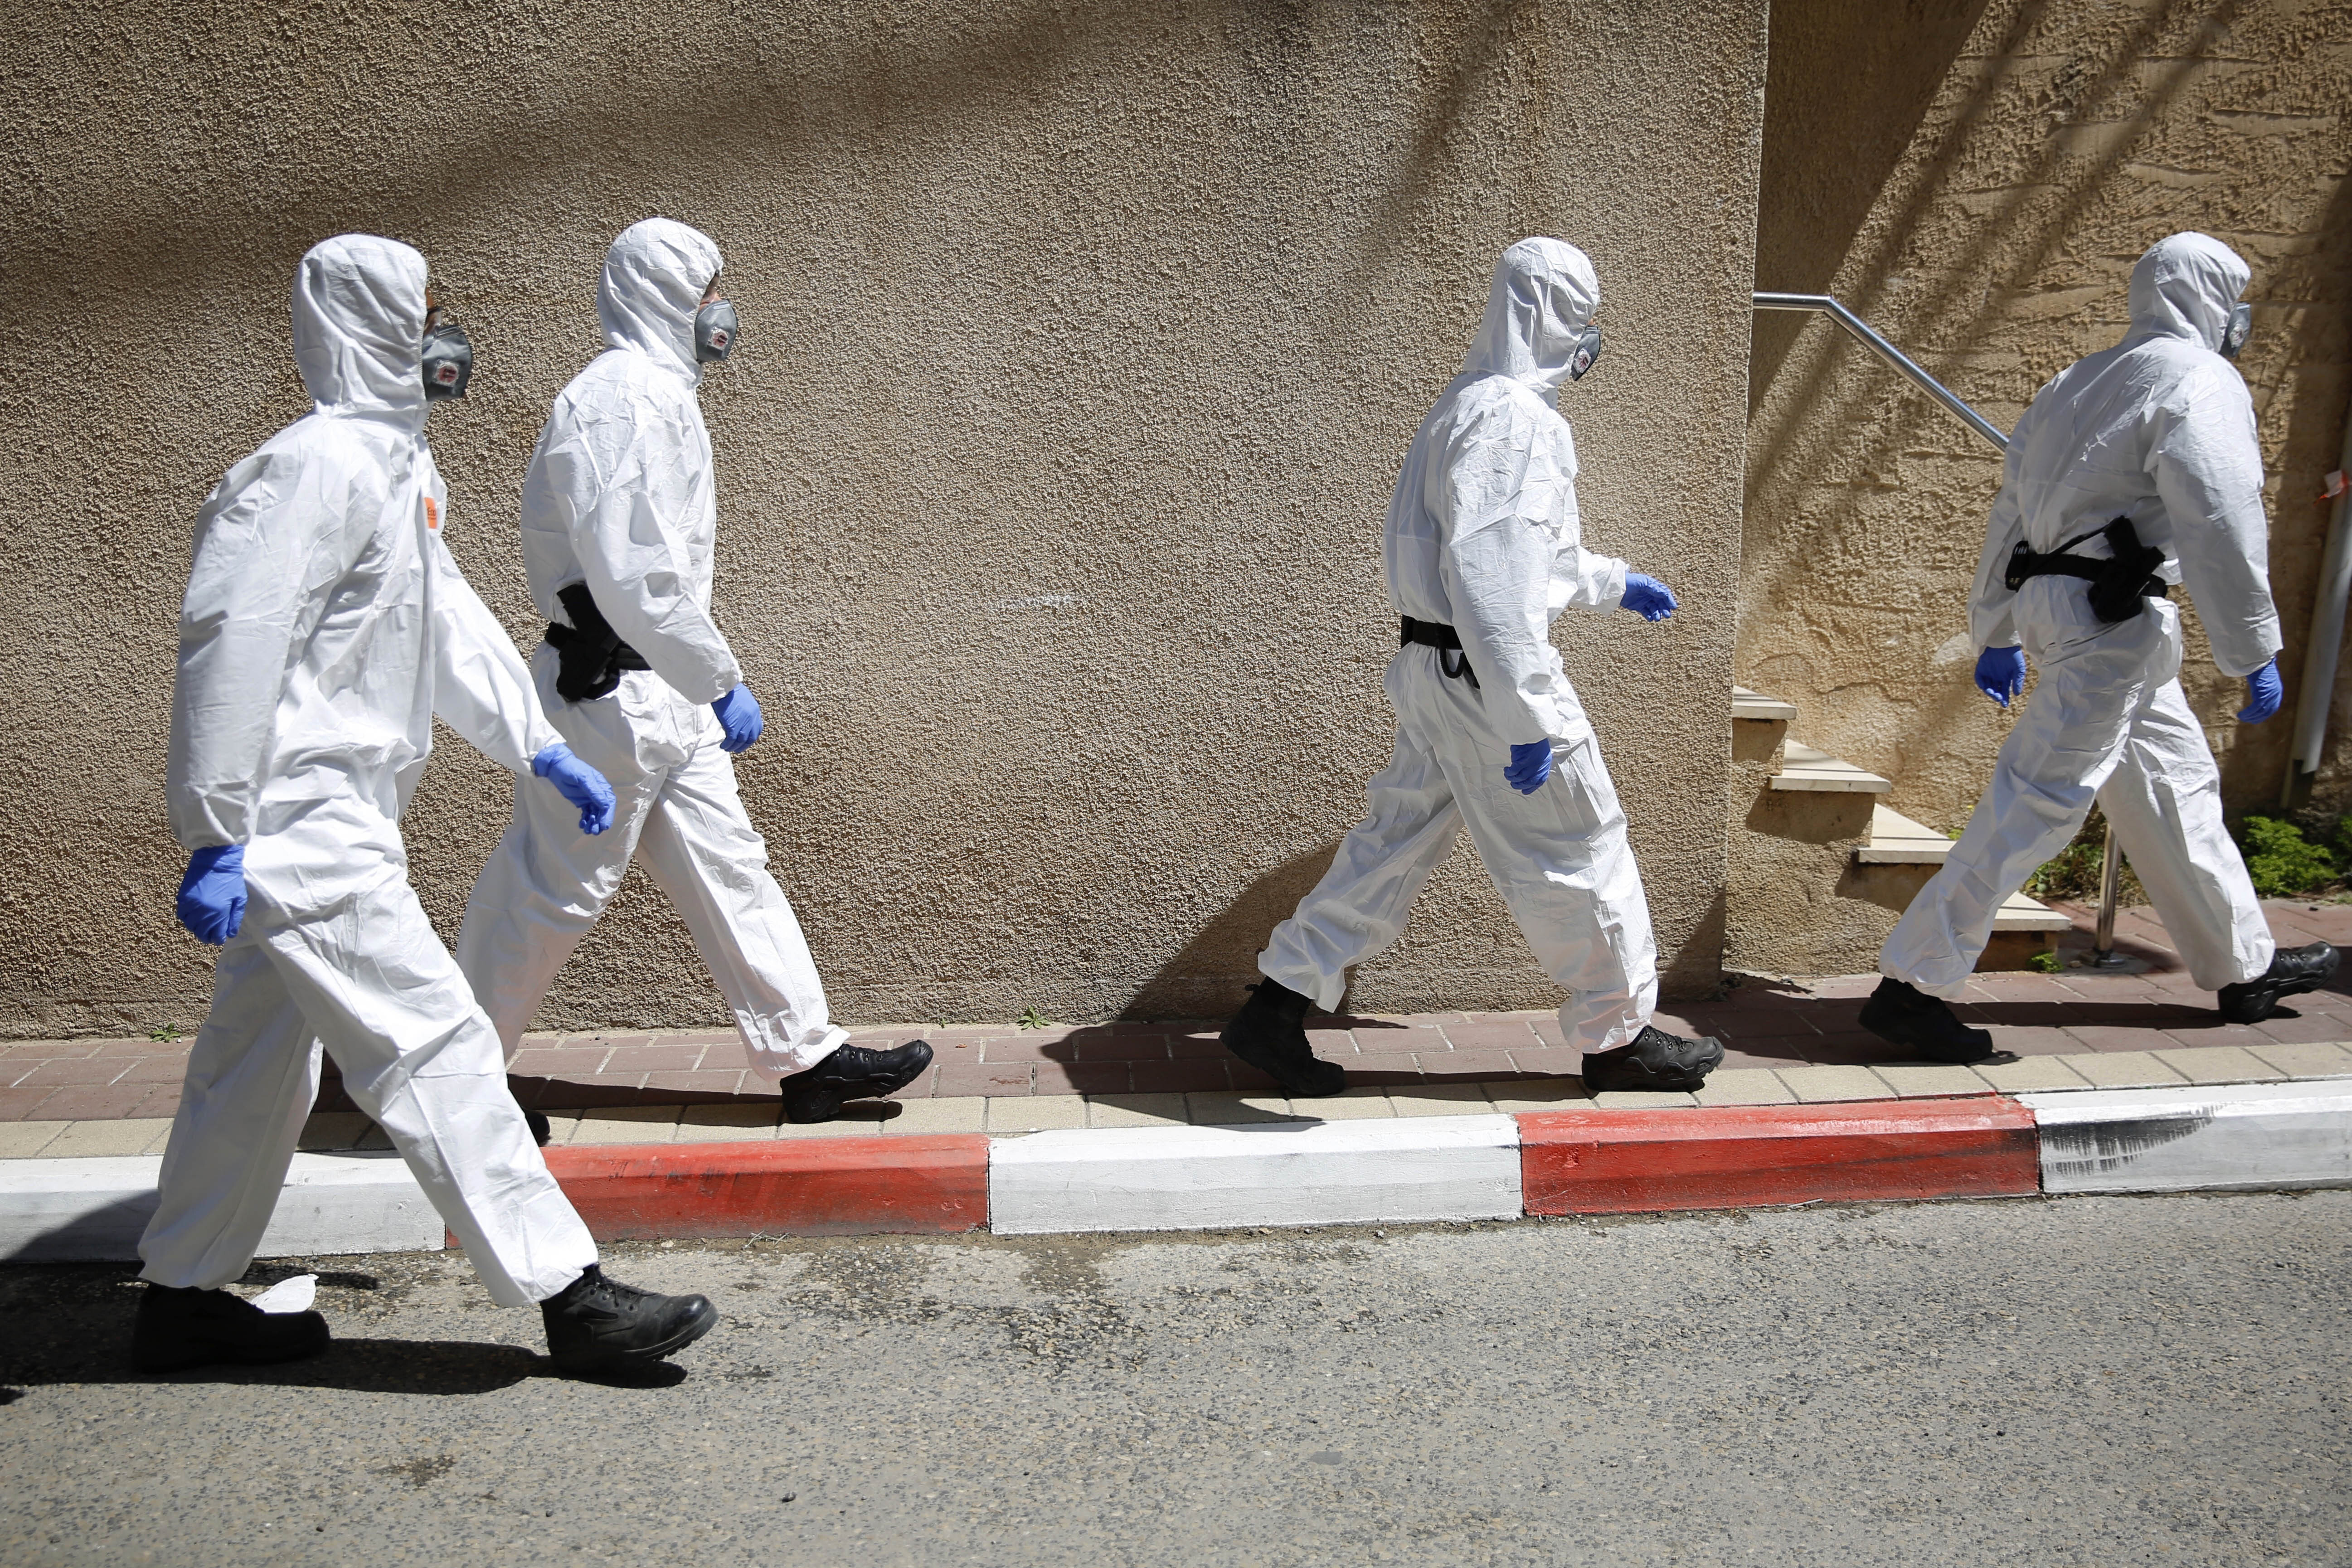 Israeli police officers wearing protective gear march toward a synagogue to detain ultra-Orthodox men because of the government's measures to help stop the spread of the coronavirus, in Bnei Brak, a suburb of Tel Aviv, Israel, Thursday, April 2, 2020.